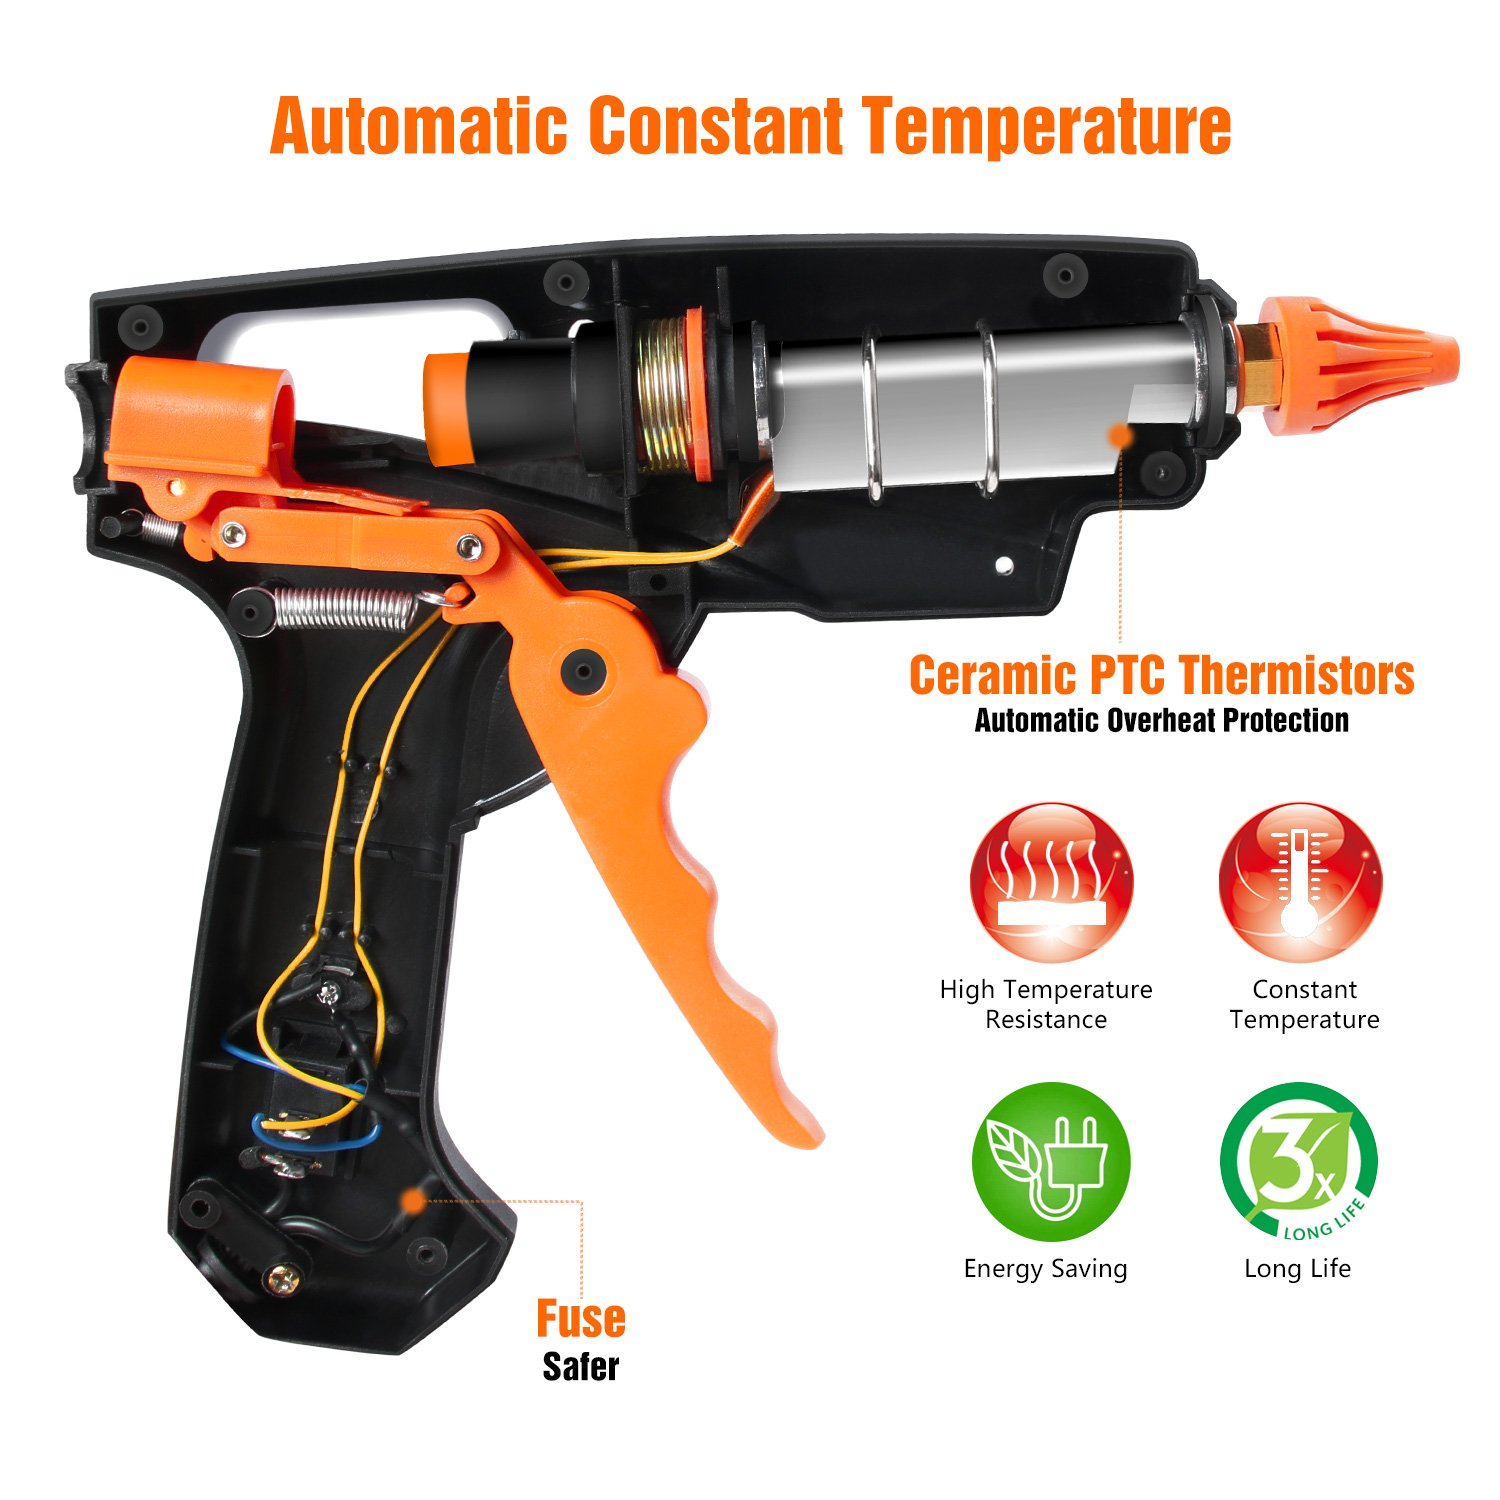 Hot Glue Gun, ABOX 60W Thermostat Hot Melt Glue Gun, Rapid Preheating with PTC Heating Technology,15 Pcs Premium Glue Sticks,Copper Nozzle and ON-Off Switch, DIY Arts &Crafts Projects, Quick Repairs by GooBang Doo (Image #3)